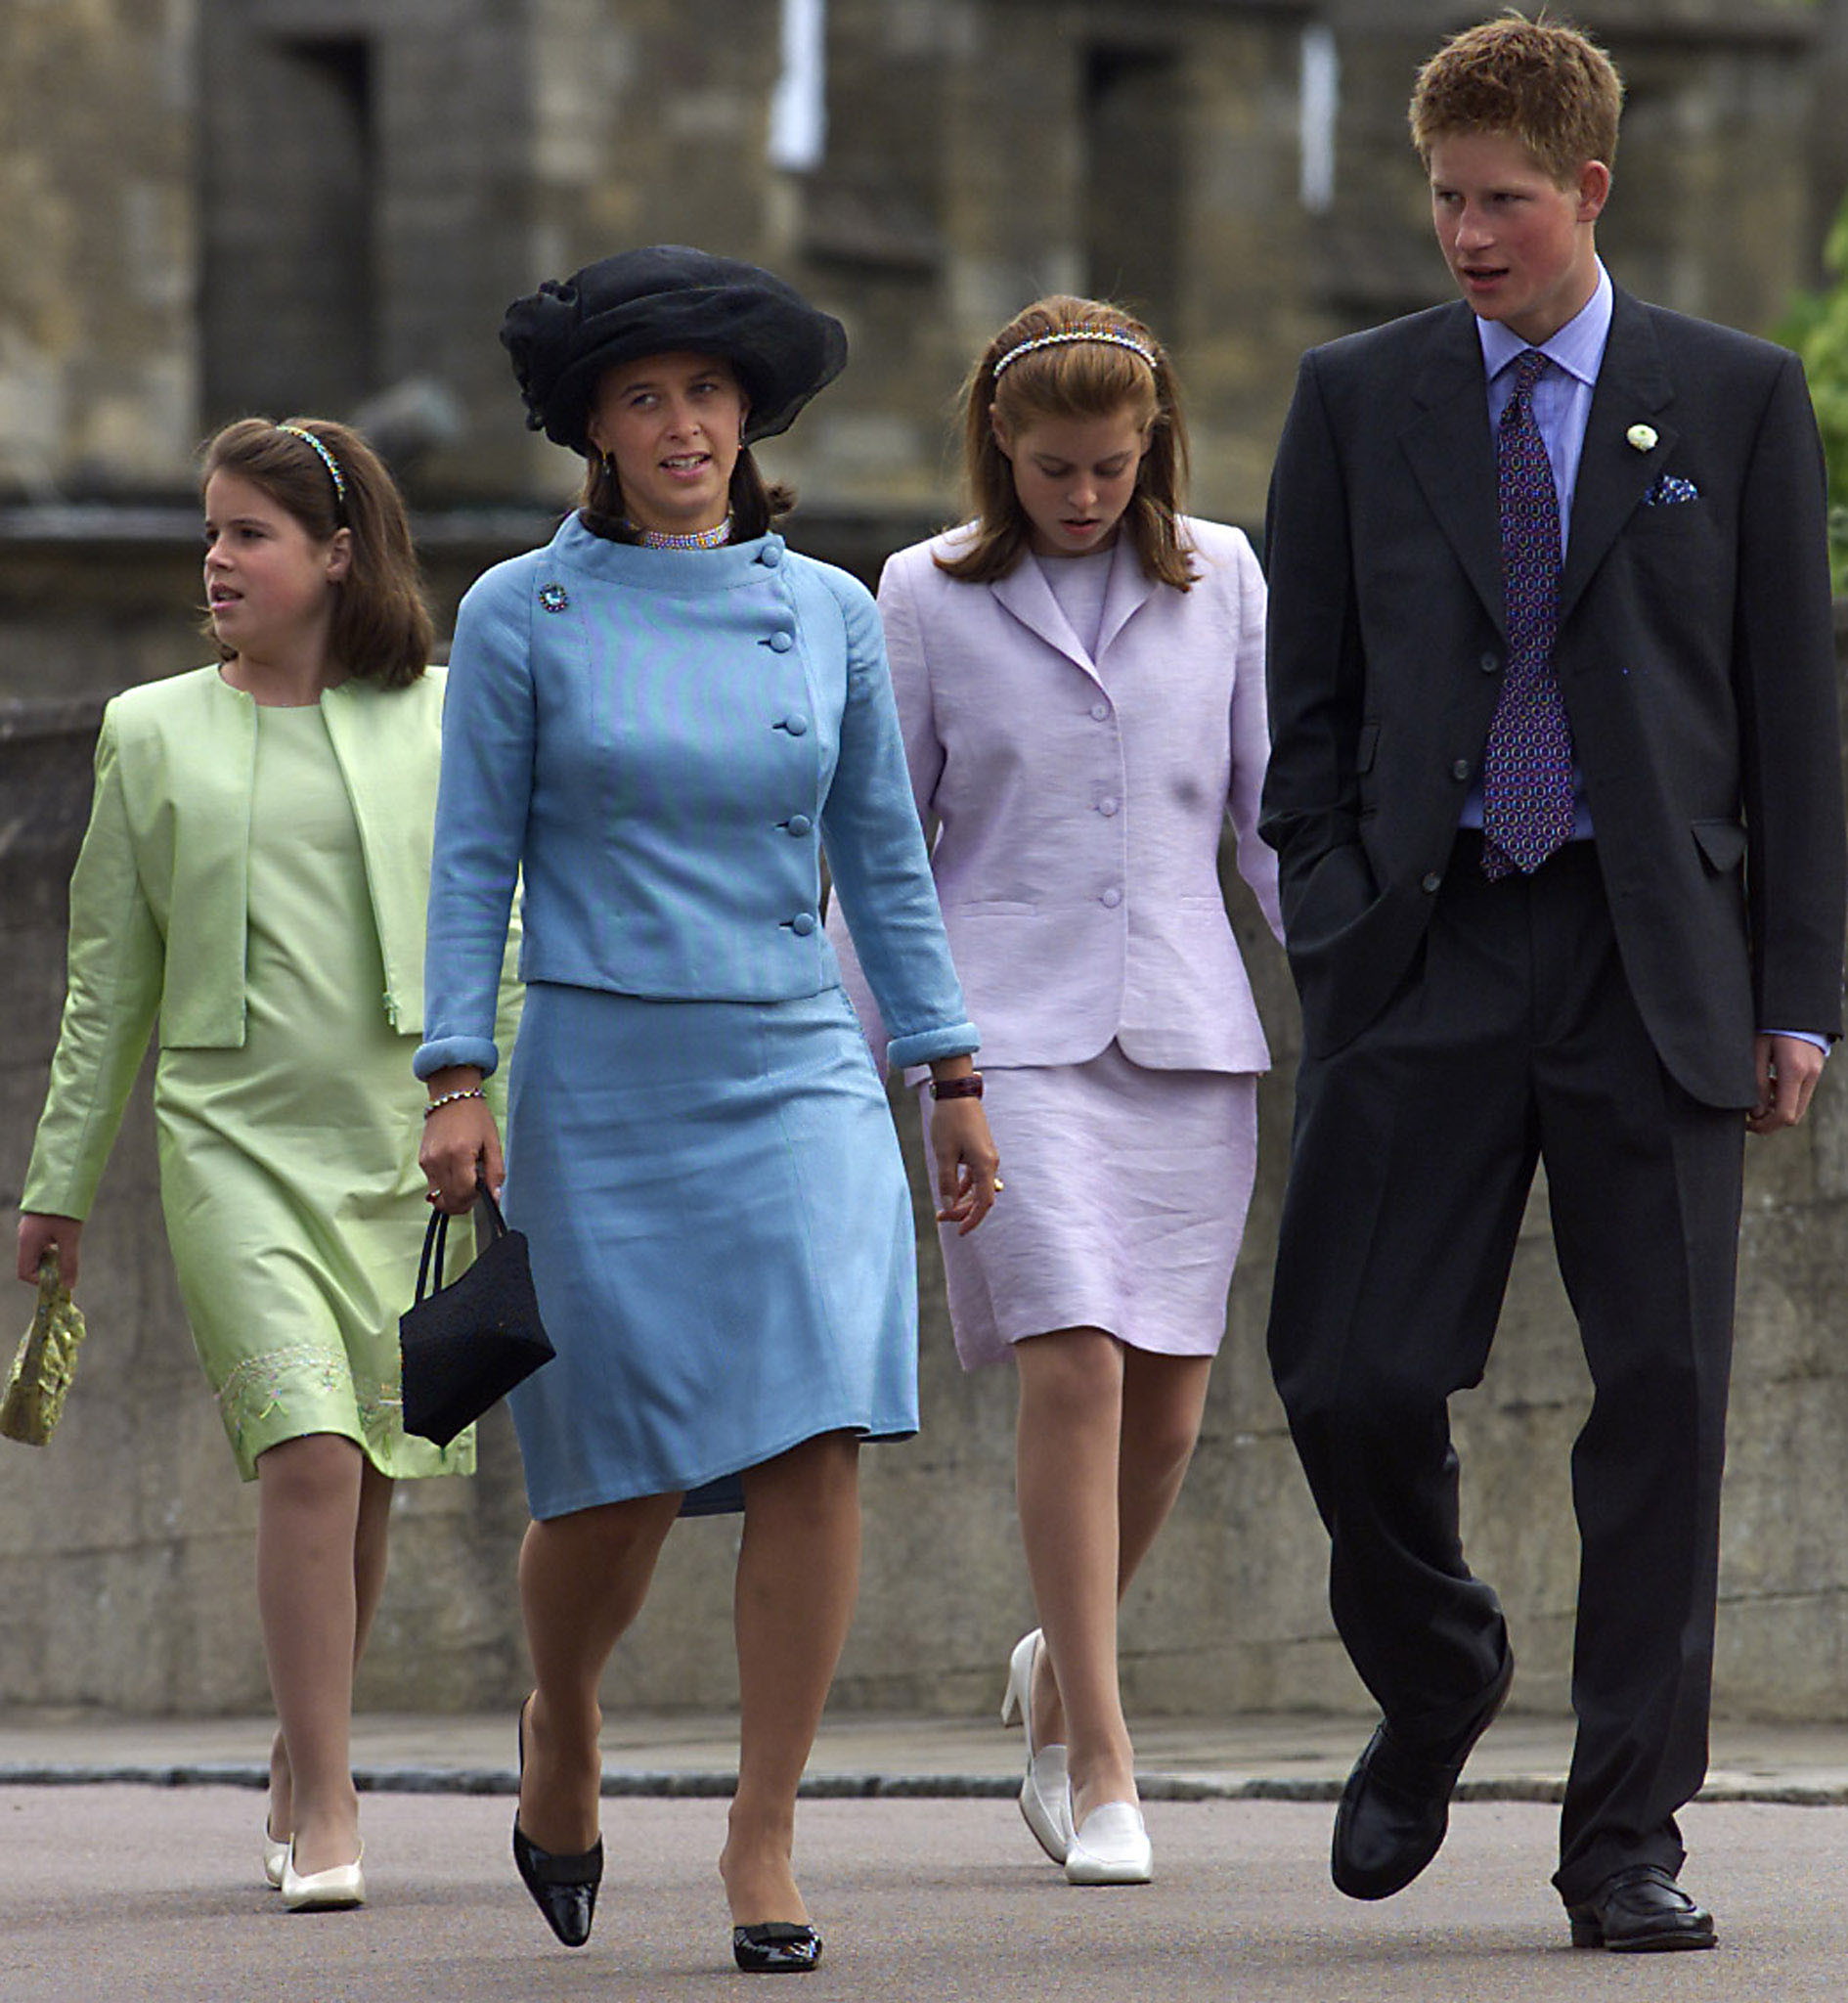 Prince Harry (R) arrives at the chapel in Windsor Castle with (L to R) Princess Eugenie, Xenia Hohenlohe-Langenburg and Princess Beatrice, June 10, 2001. [Harry was joined by many members of the royal family to celebrate the 80th birthday of his grandfather Prince Philip, the Duke of Edinburgh.   ] - PBEAHULAMBD